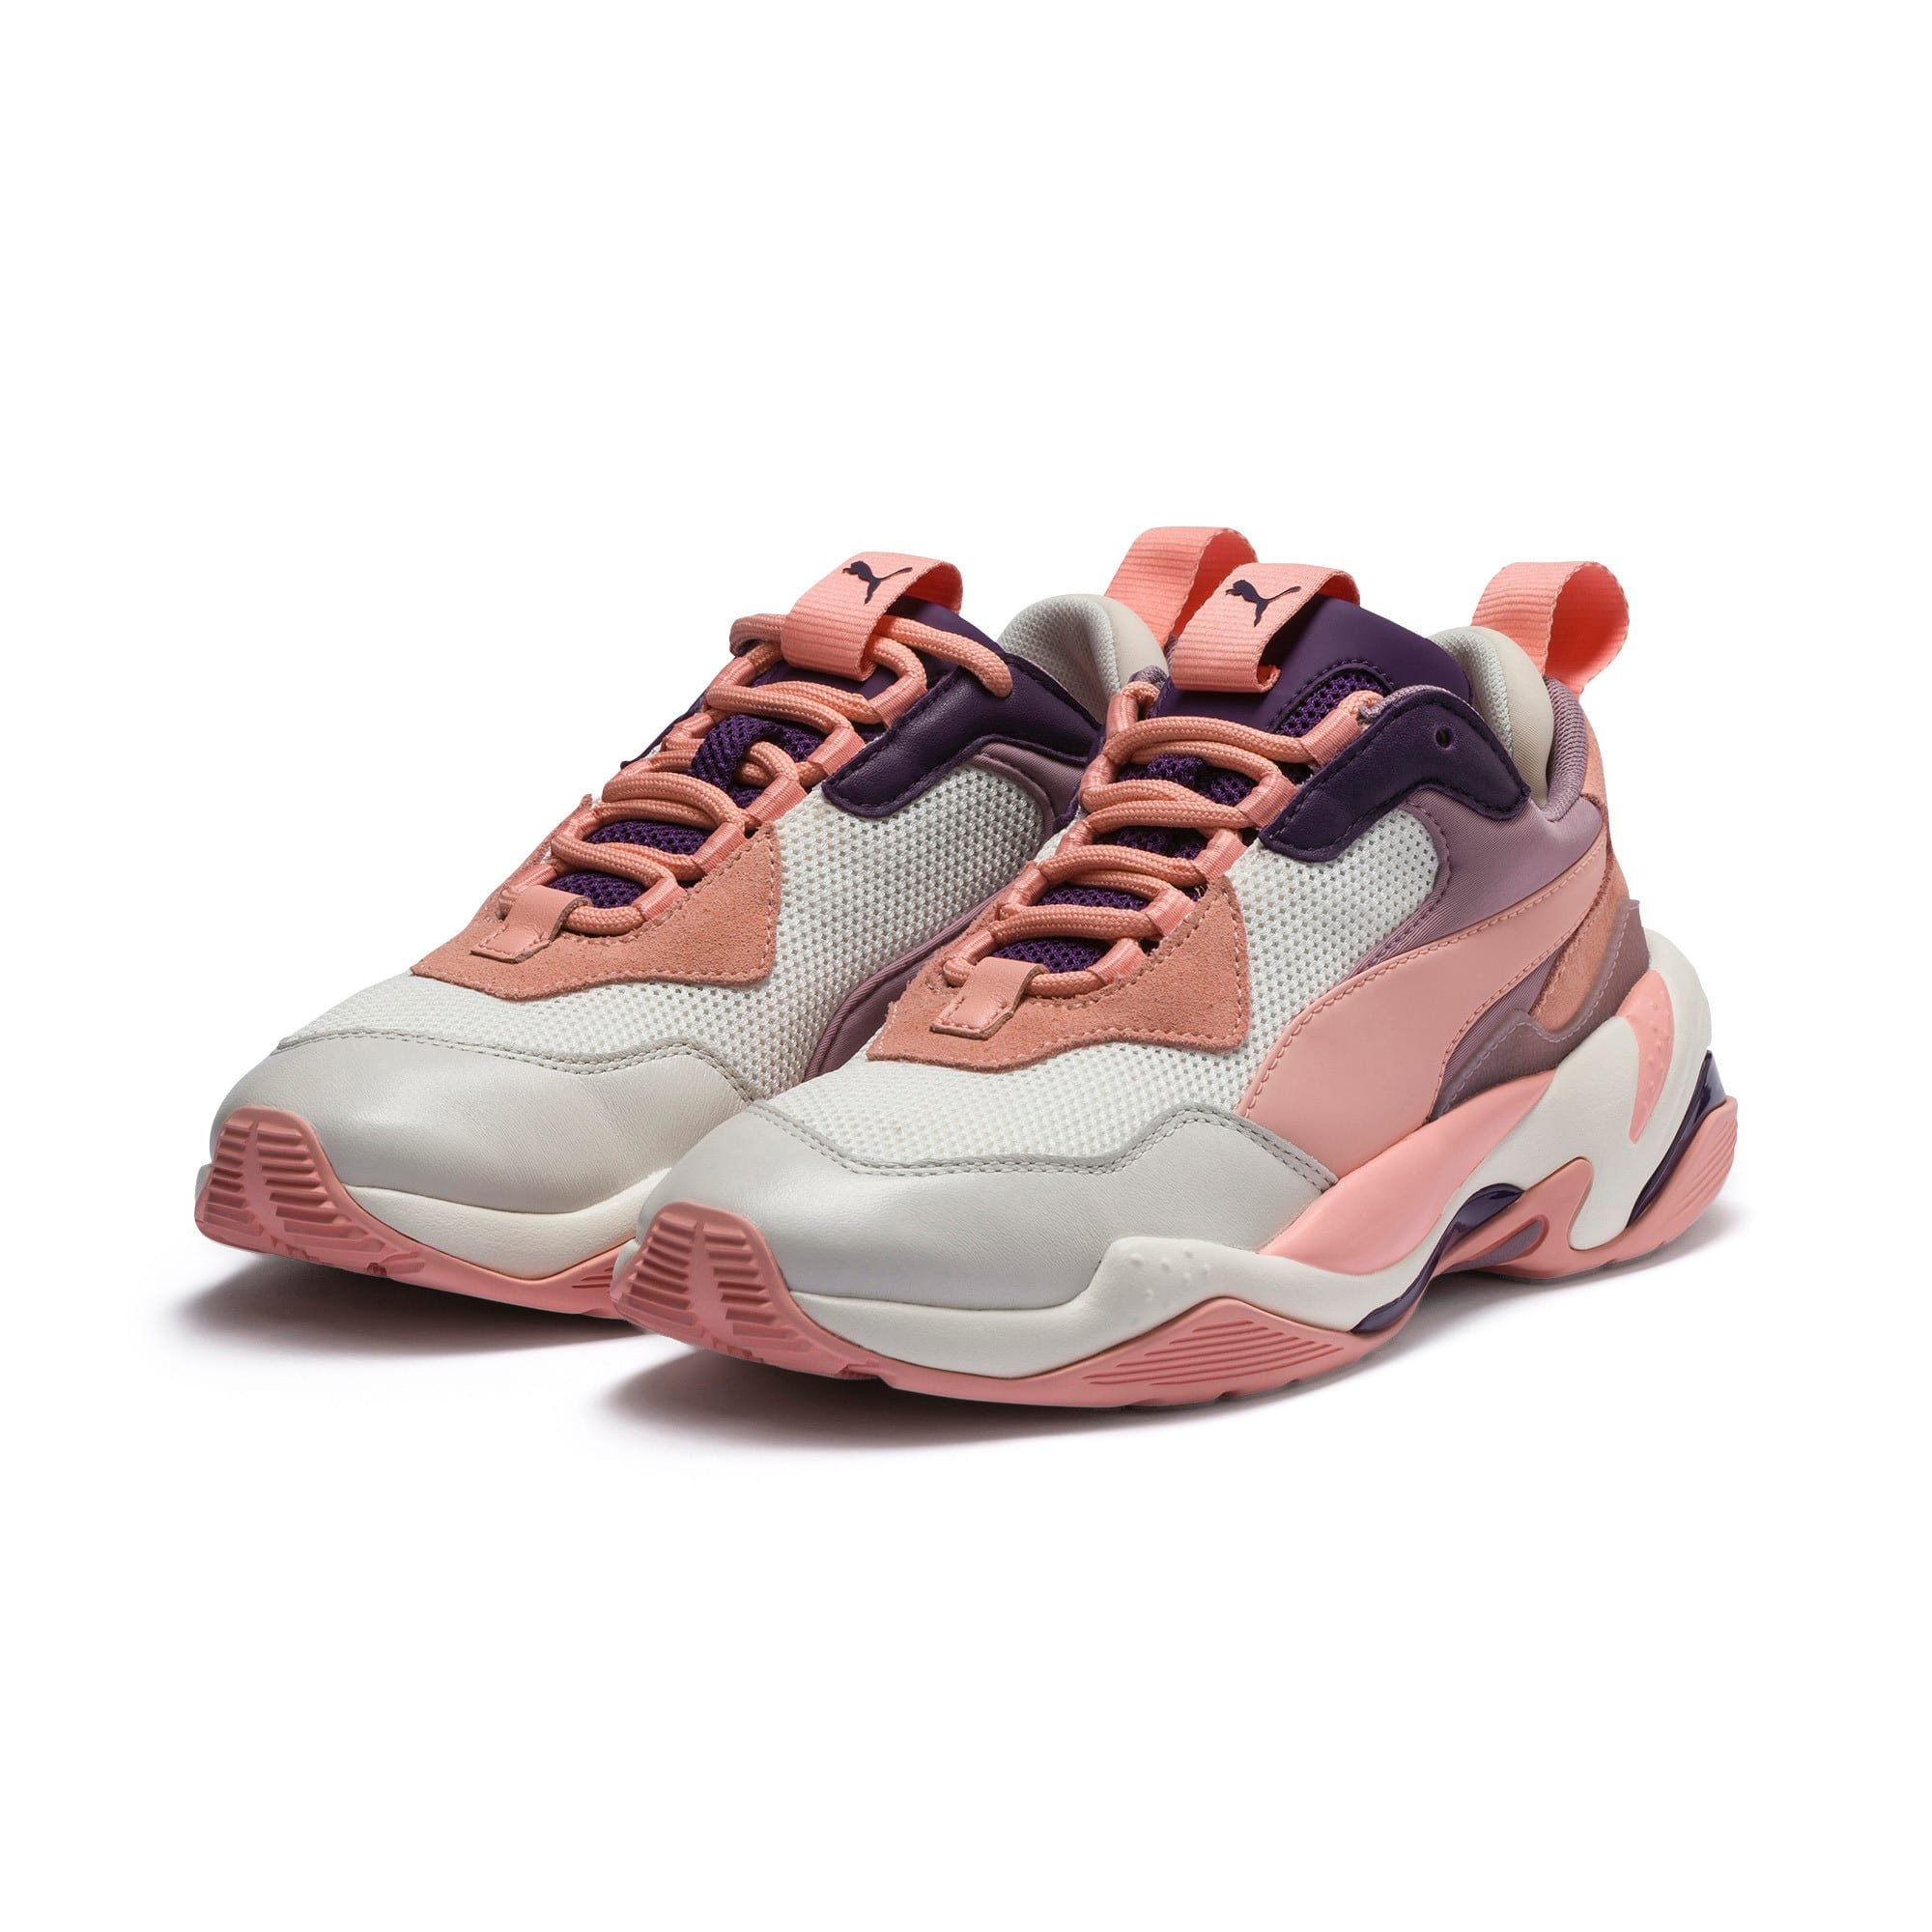 Thumbnail 2 of Thunder Spectra sneakers, Marshmallow-Peach Bud, medium